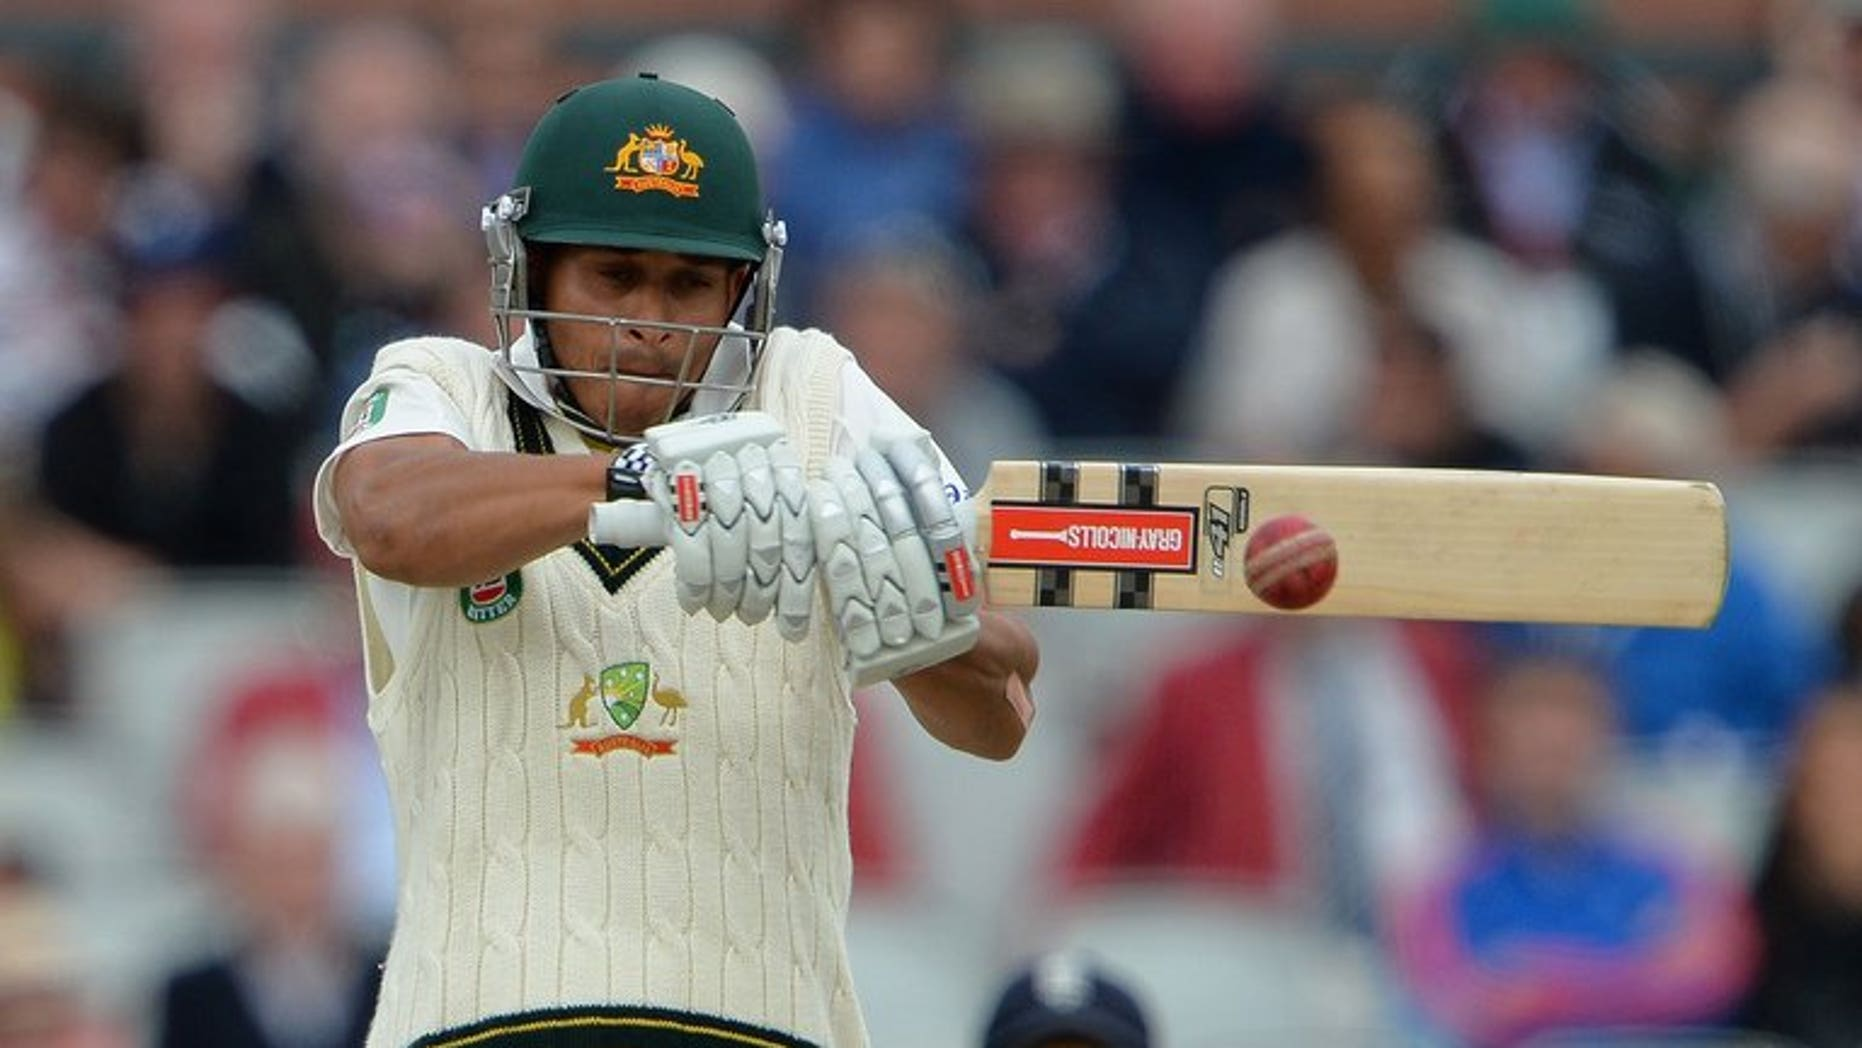 Australia's Usman Khawaja plays a shot at Old Trafford in Manchester, north-west England on August 4, 2013. Khawaja suffered another low score as the tourists warmed-up for next week's final Ashes Test with a draw against the second-string England Lions on Saturday.